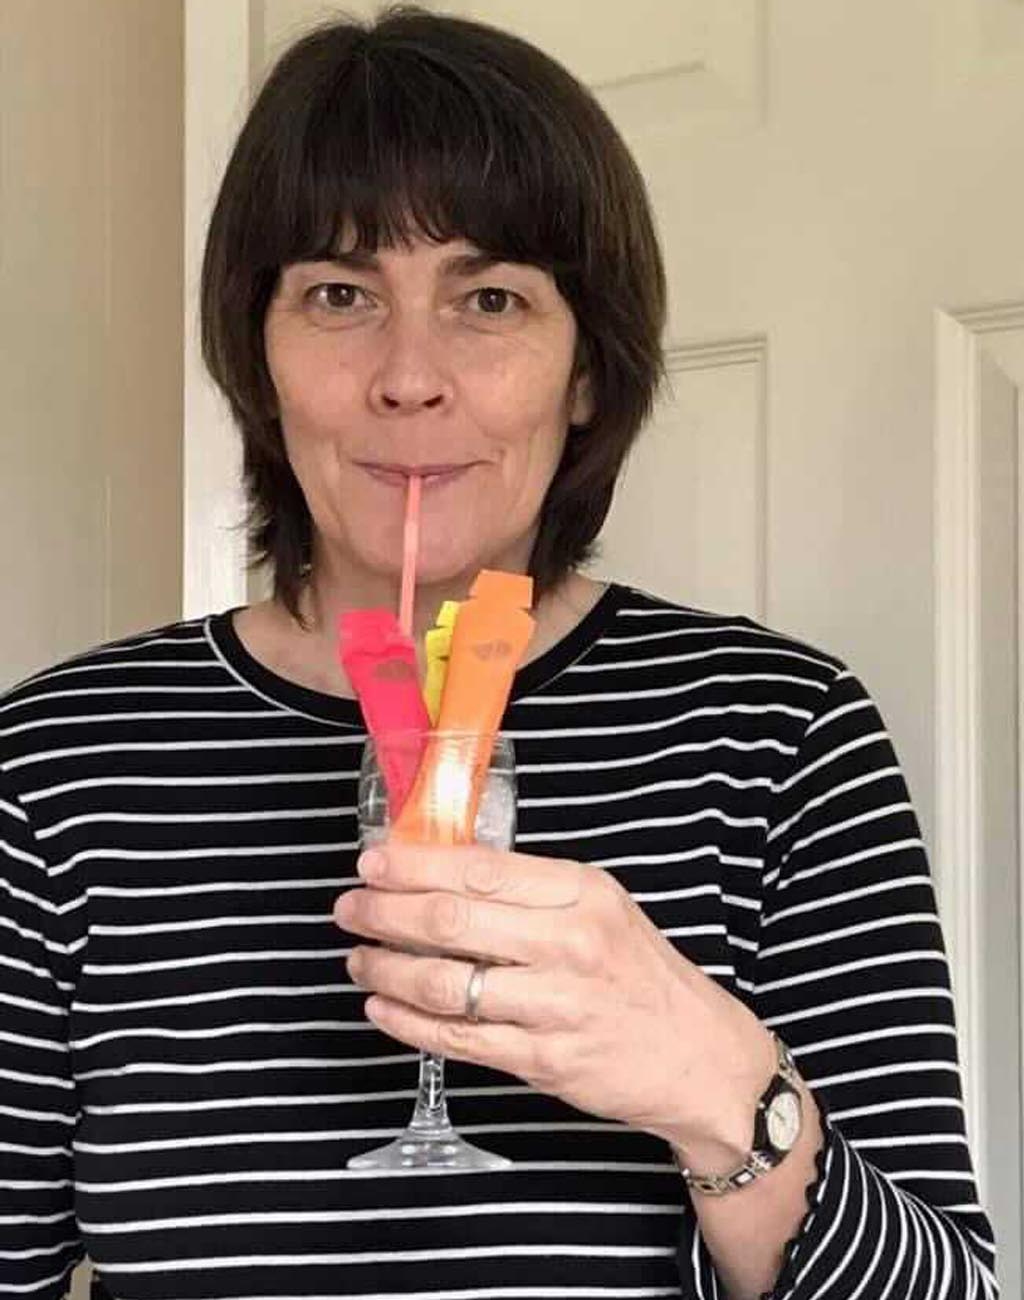 Photo of a white woman with chin length dark hair, she is wearing a black and white striped top and holding up a cocktail glass of Absolute Collagen sachets and playfully miming drinking them through a straw